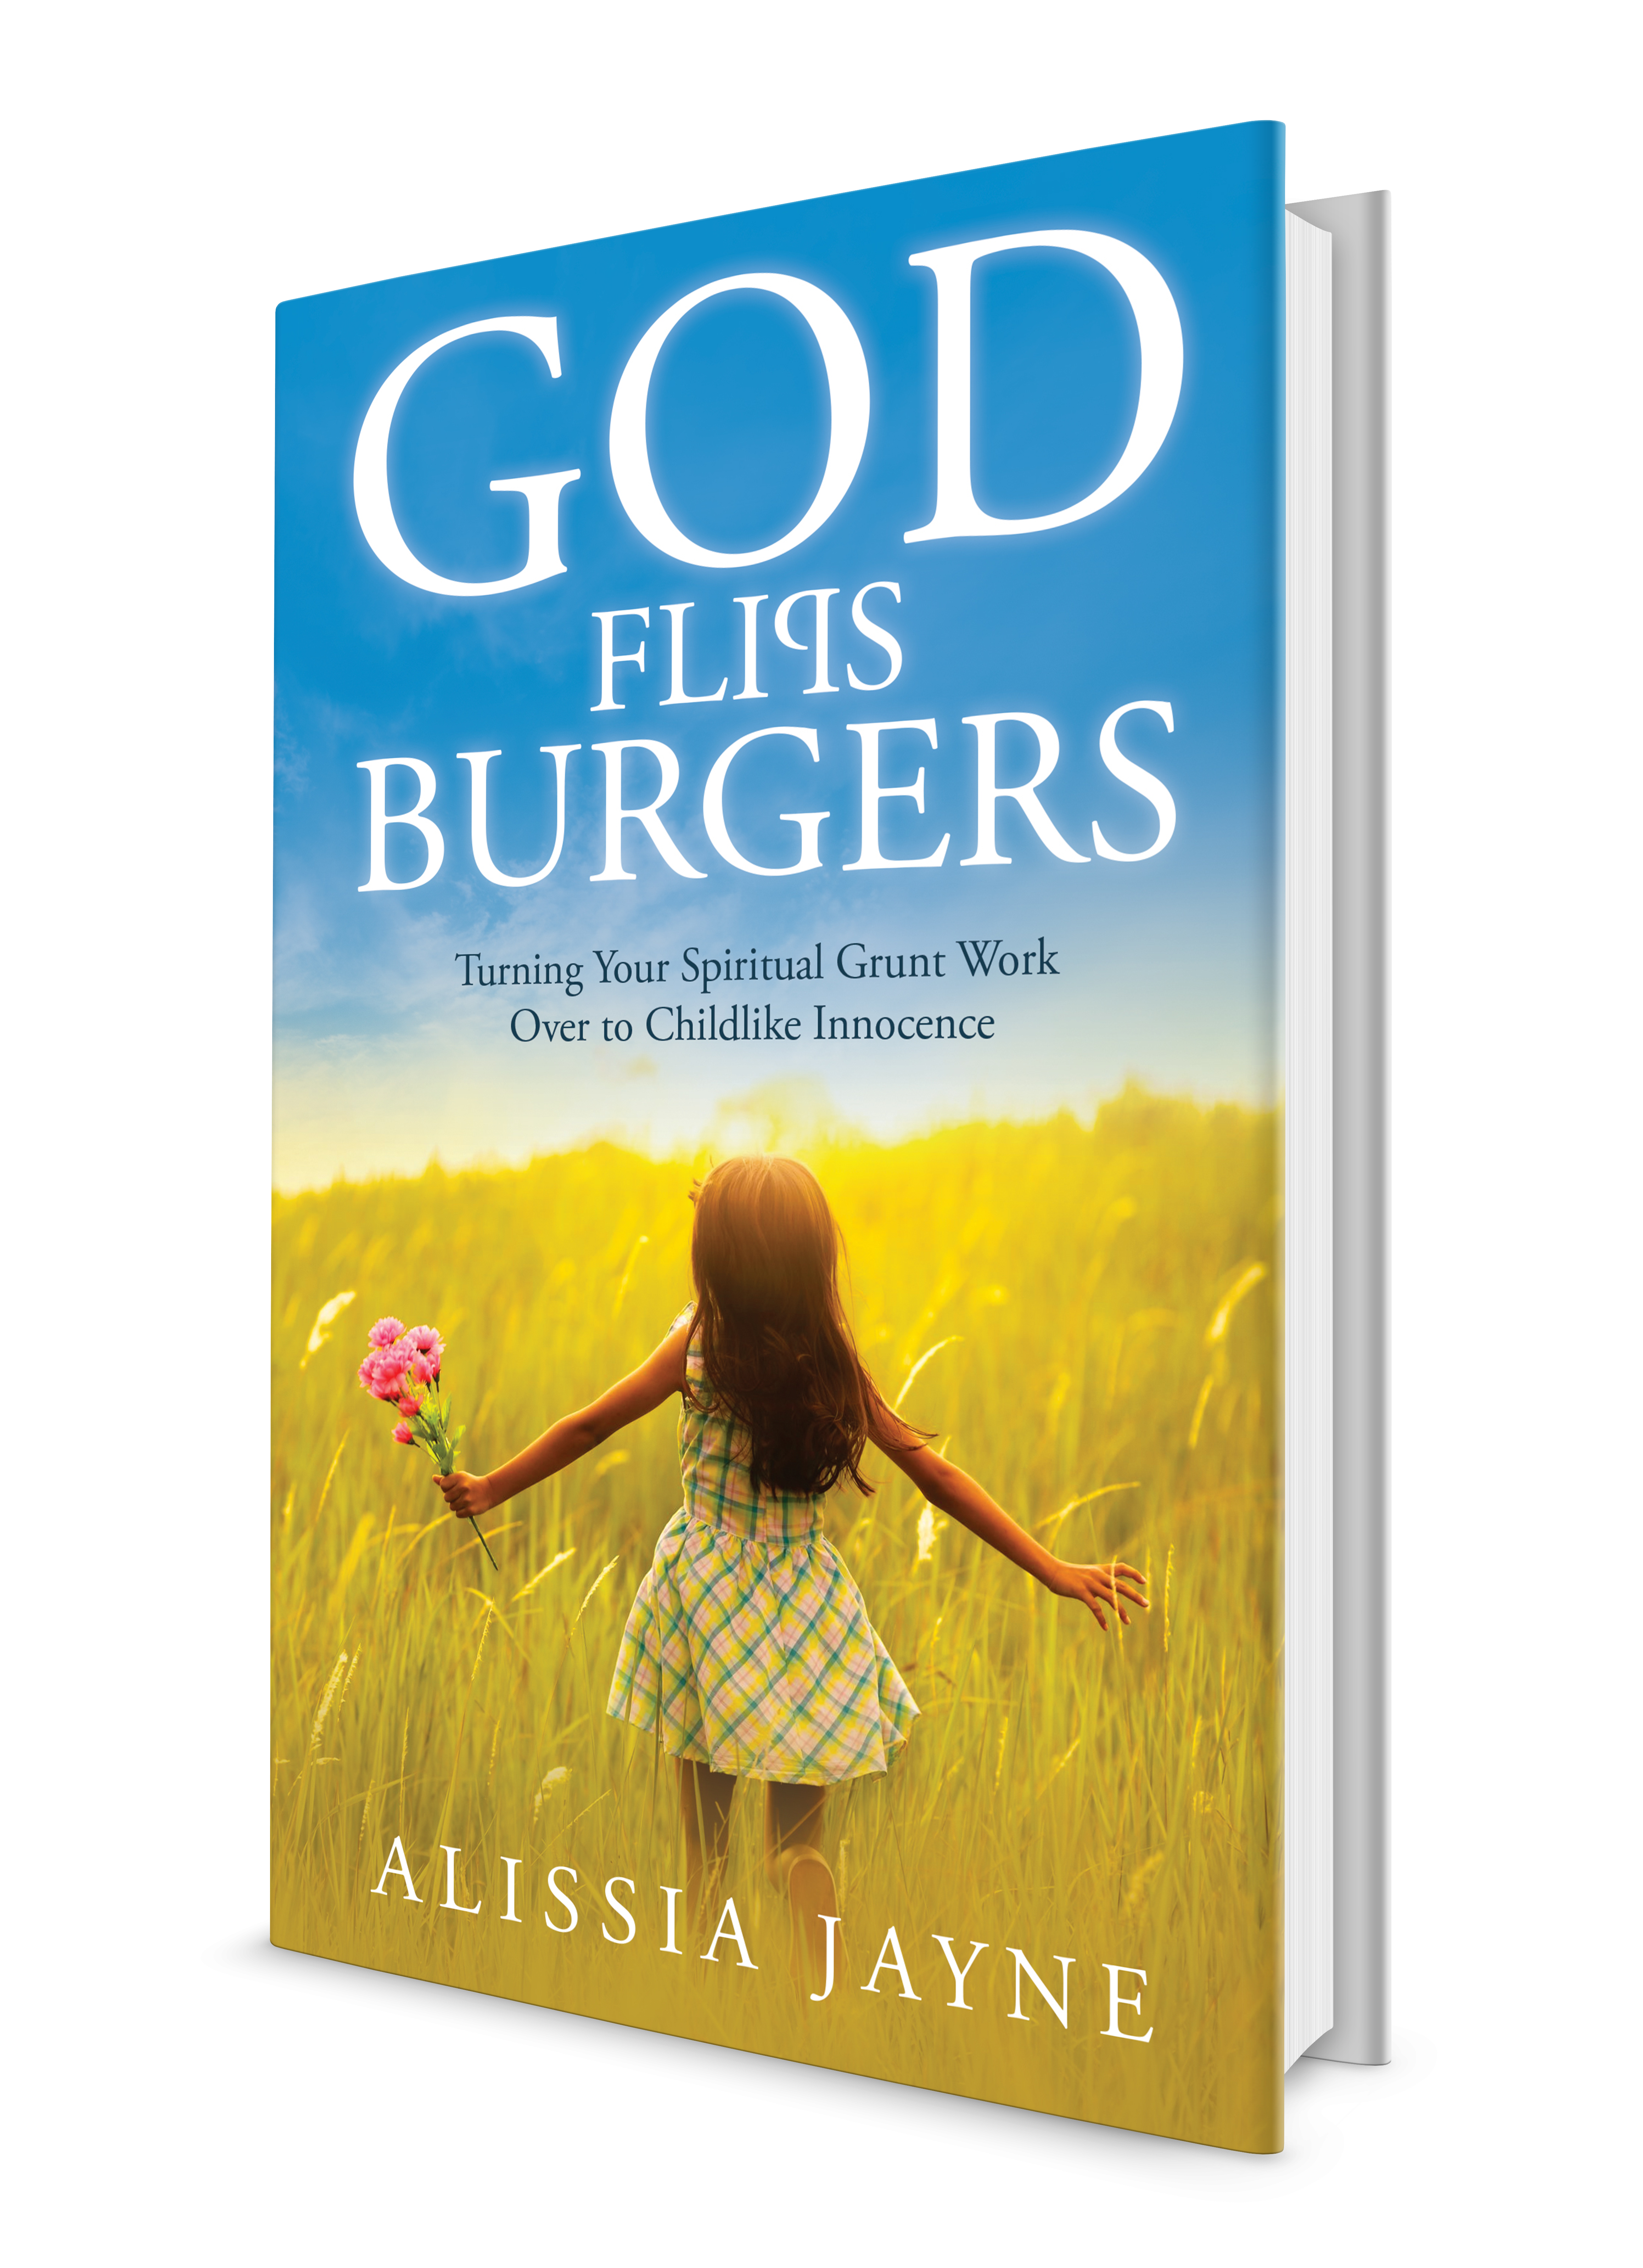 God Flips Burgers book cover.